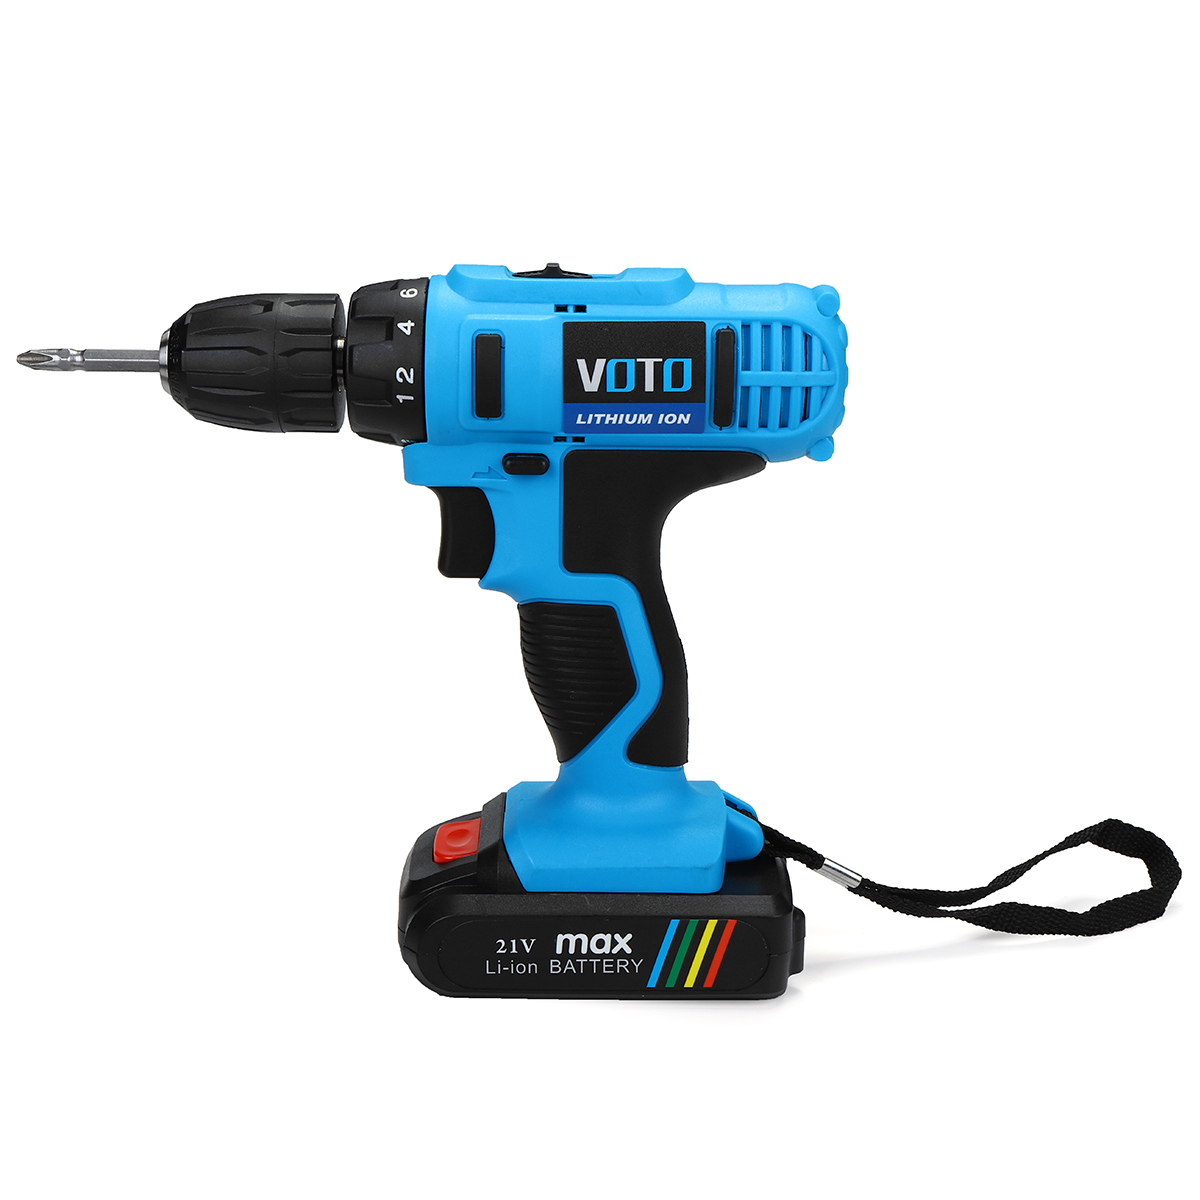 21V Reversible Li-ion Battery Cordless Drill Driver Electric Screwdriver Two-speed Drilling Tool